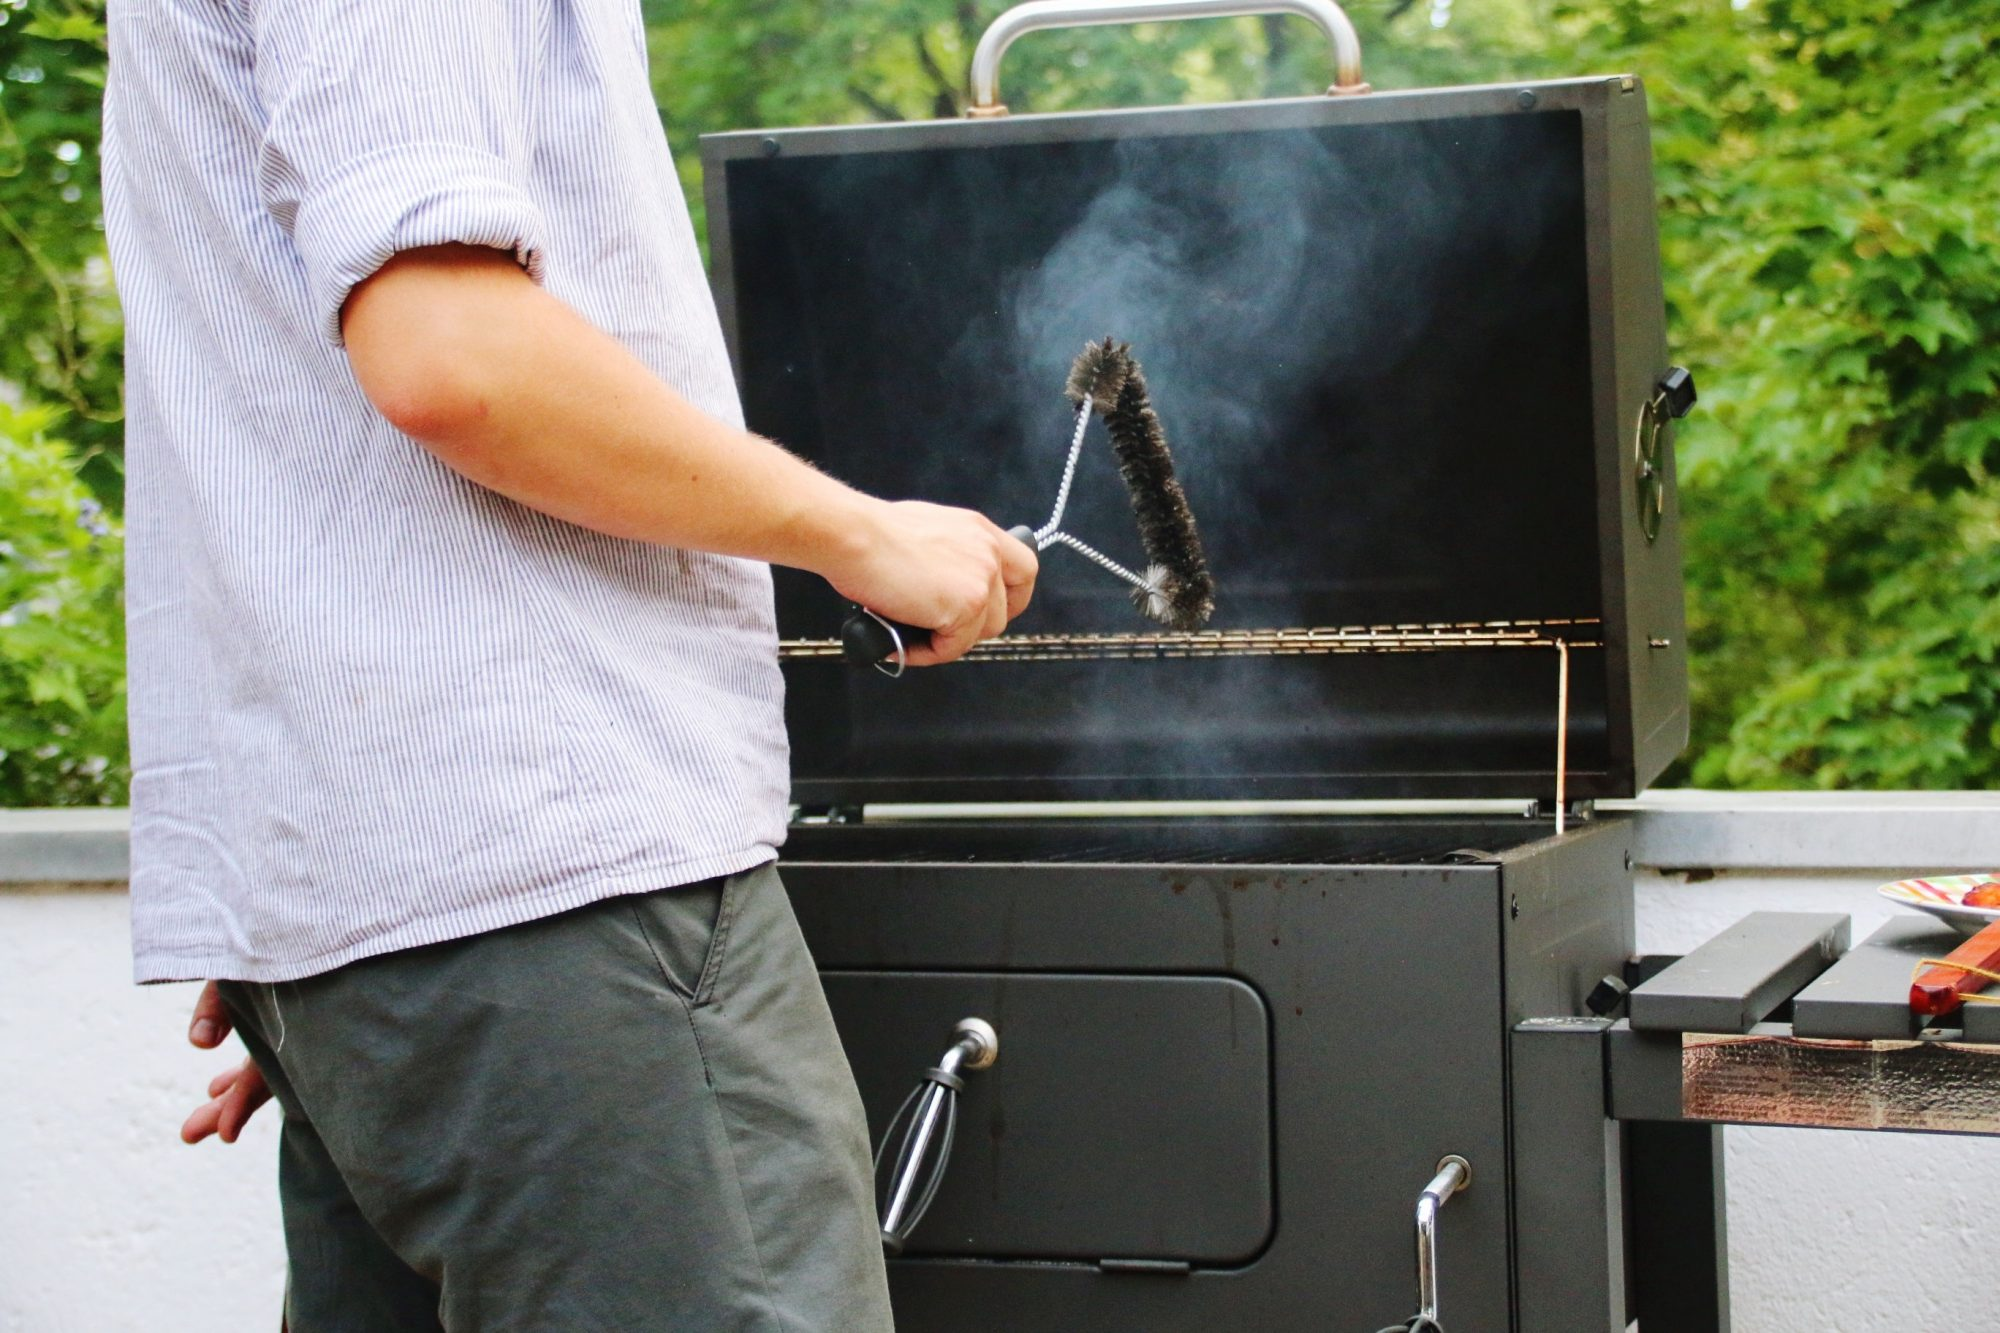 Why You Should Never Use a Wire Brush to Clean Your Grill